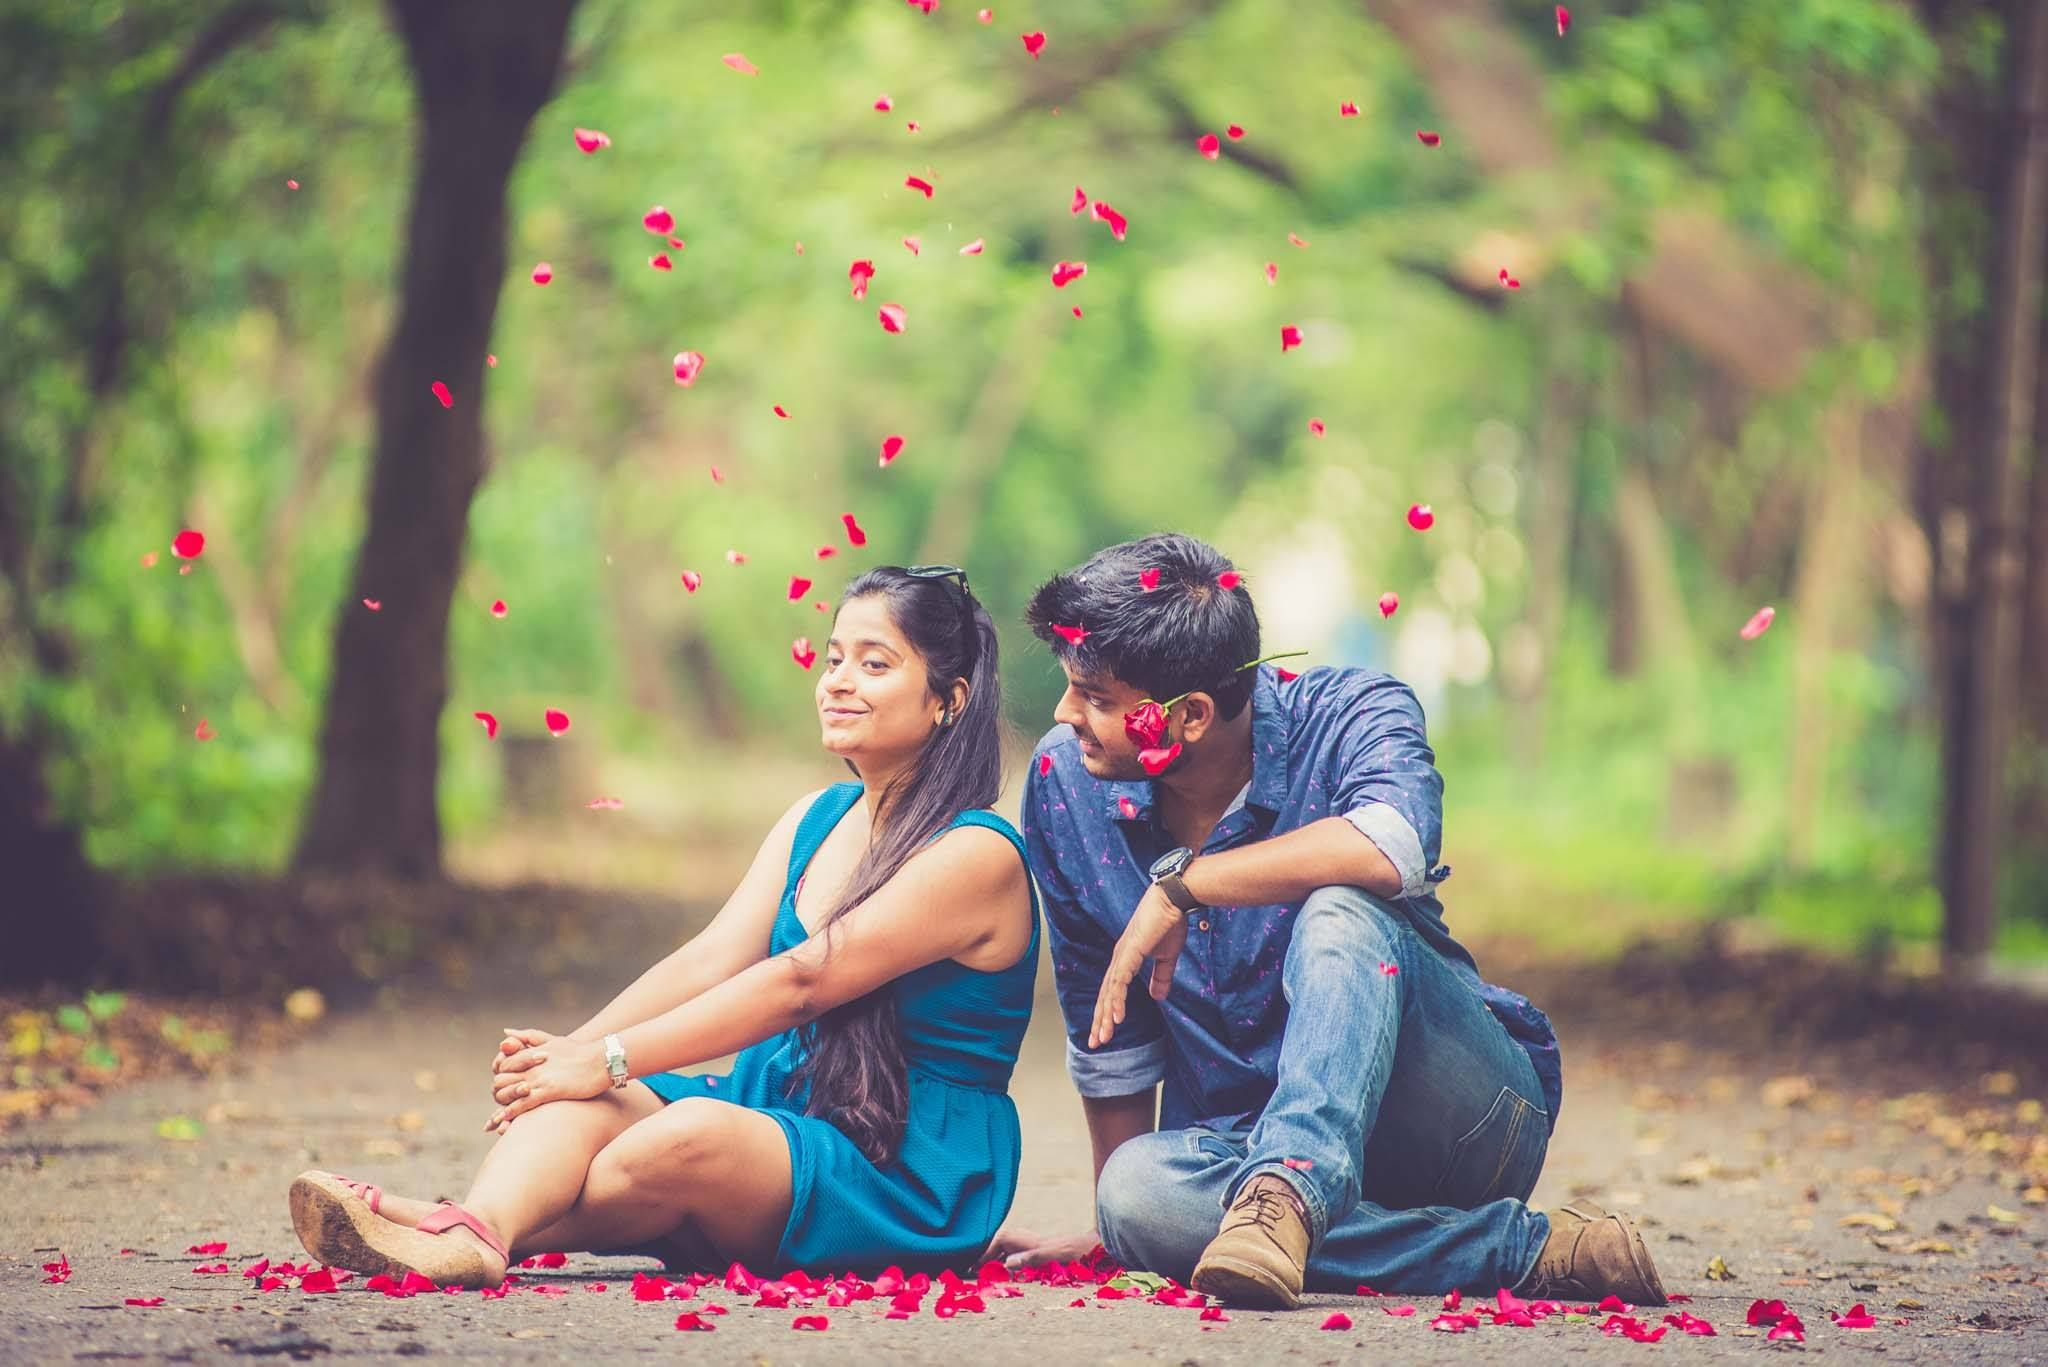 Wfa Wedding Photography: 20 Spring Colourful PreWedding Photoshoot Props